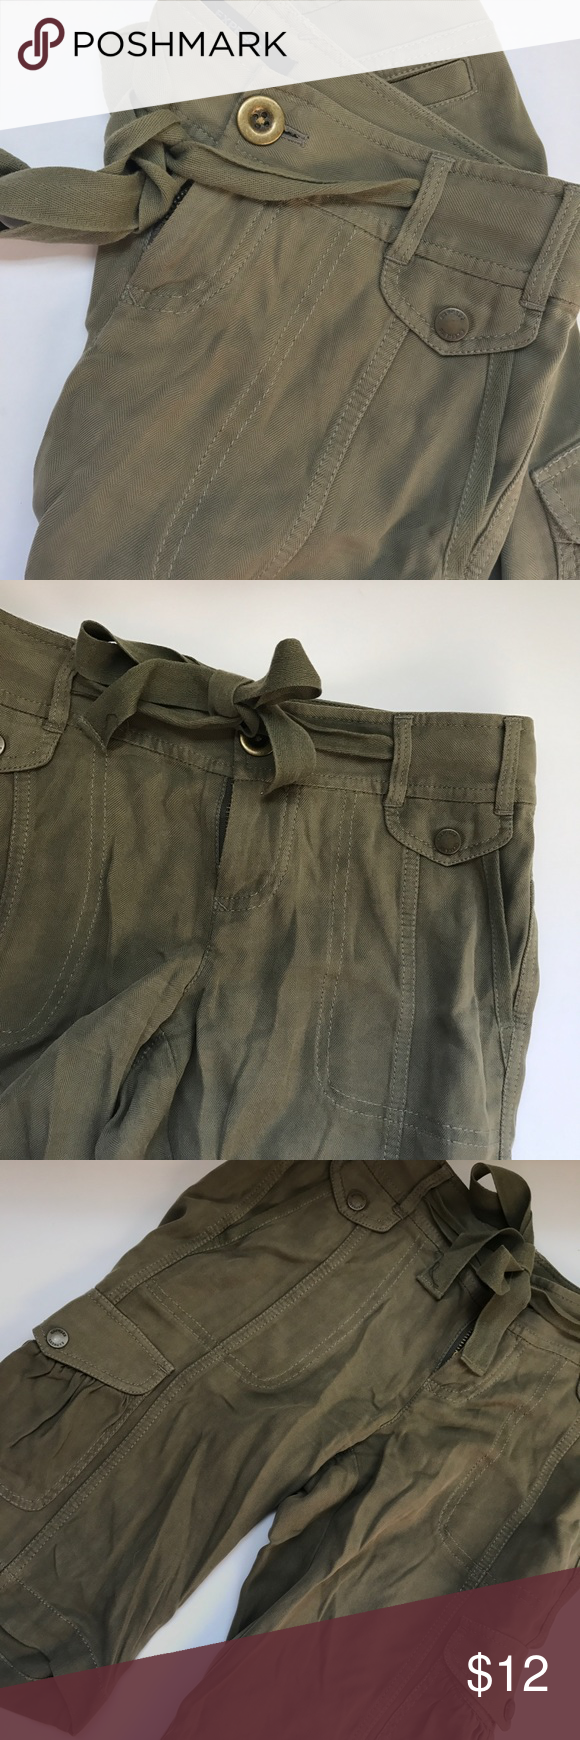 ed5a6d2c97 100% Silk Olive Green Express Cargo Shorts Sexy and comfy Olive Green 100%  Silk Cargo Shorts. Worn only once. Side and back pockets.